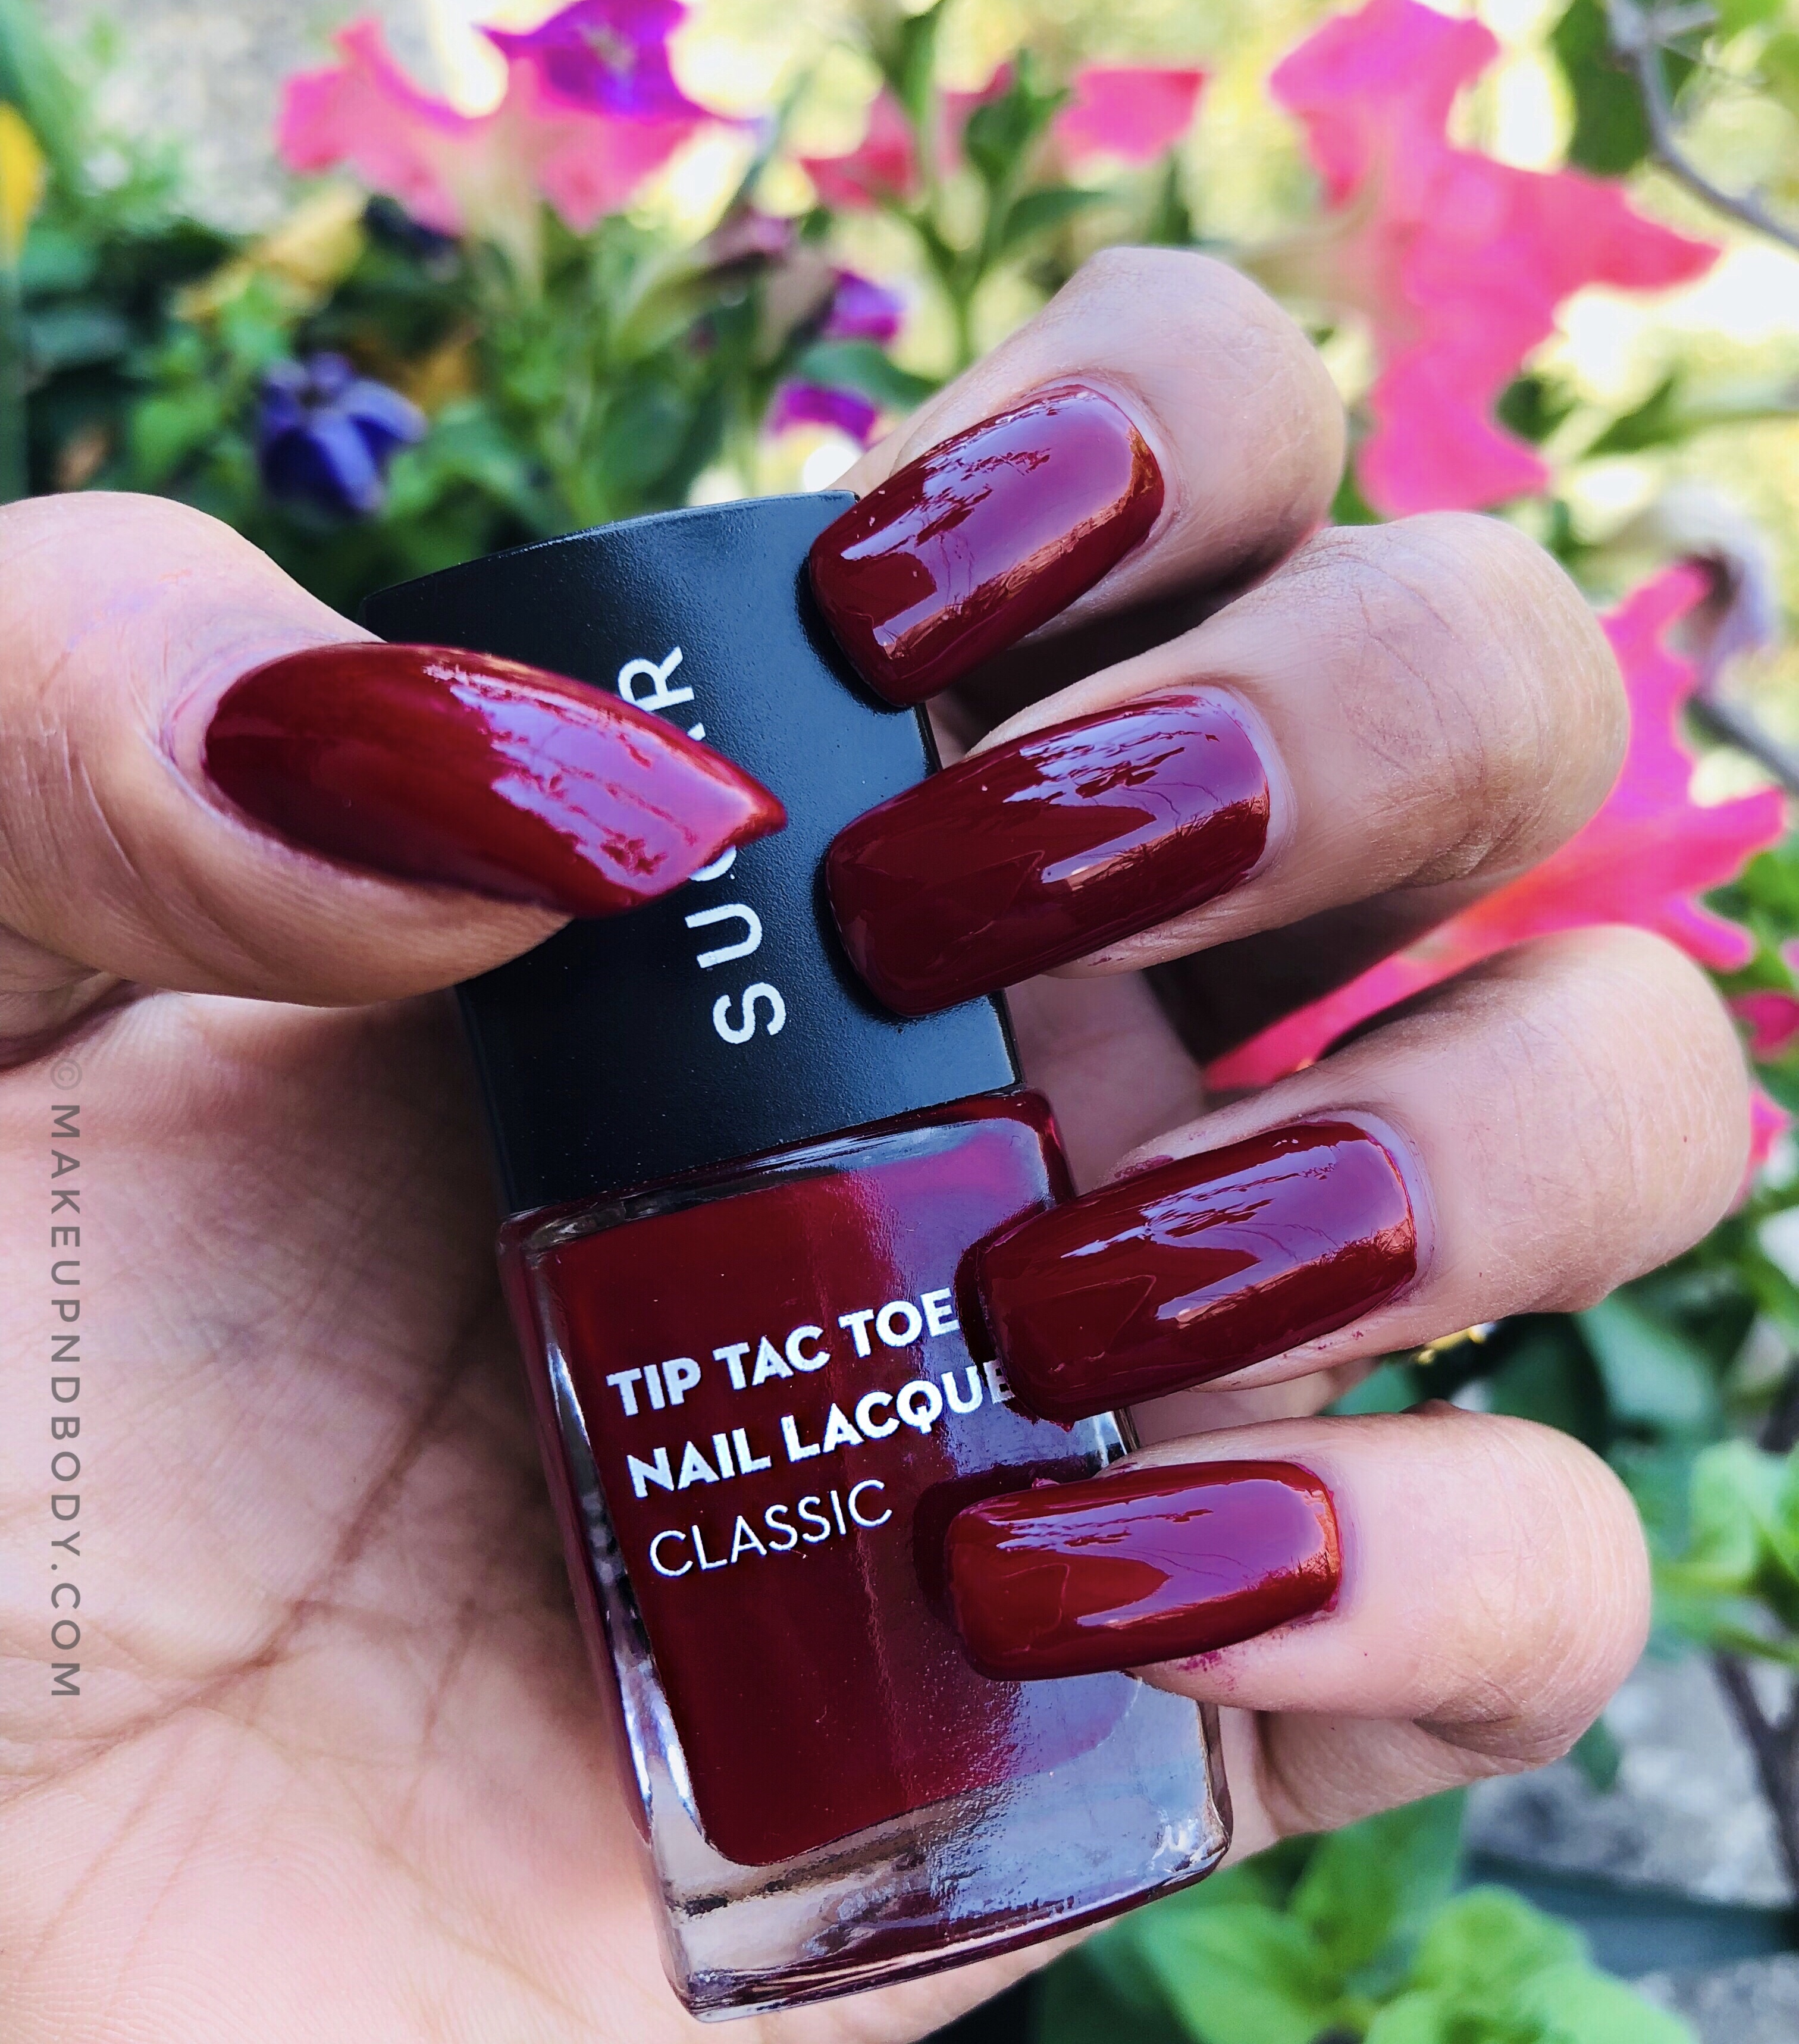 SUGAR Tip Tac Toe Nail Lacquer 59 Merlot The Merrier Swatch